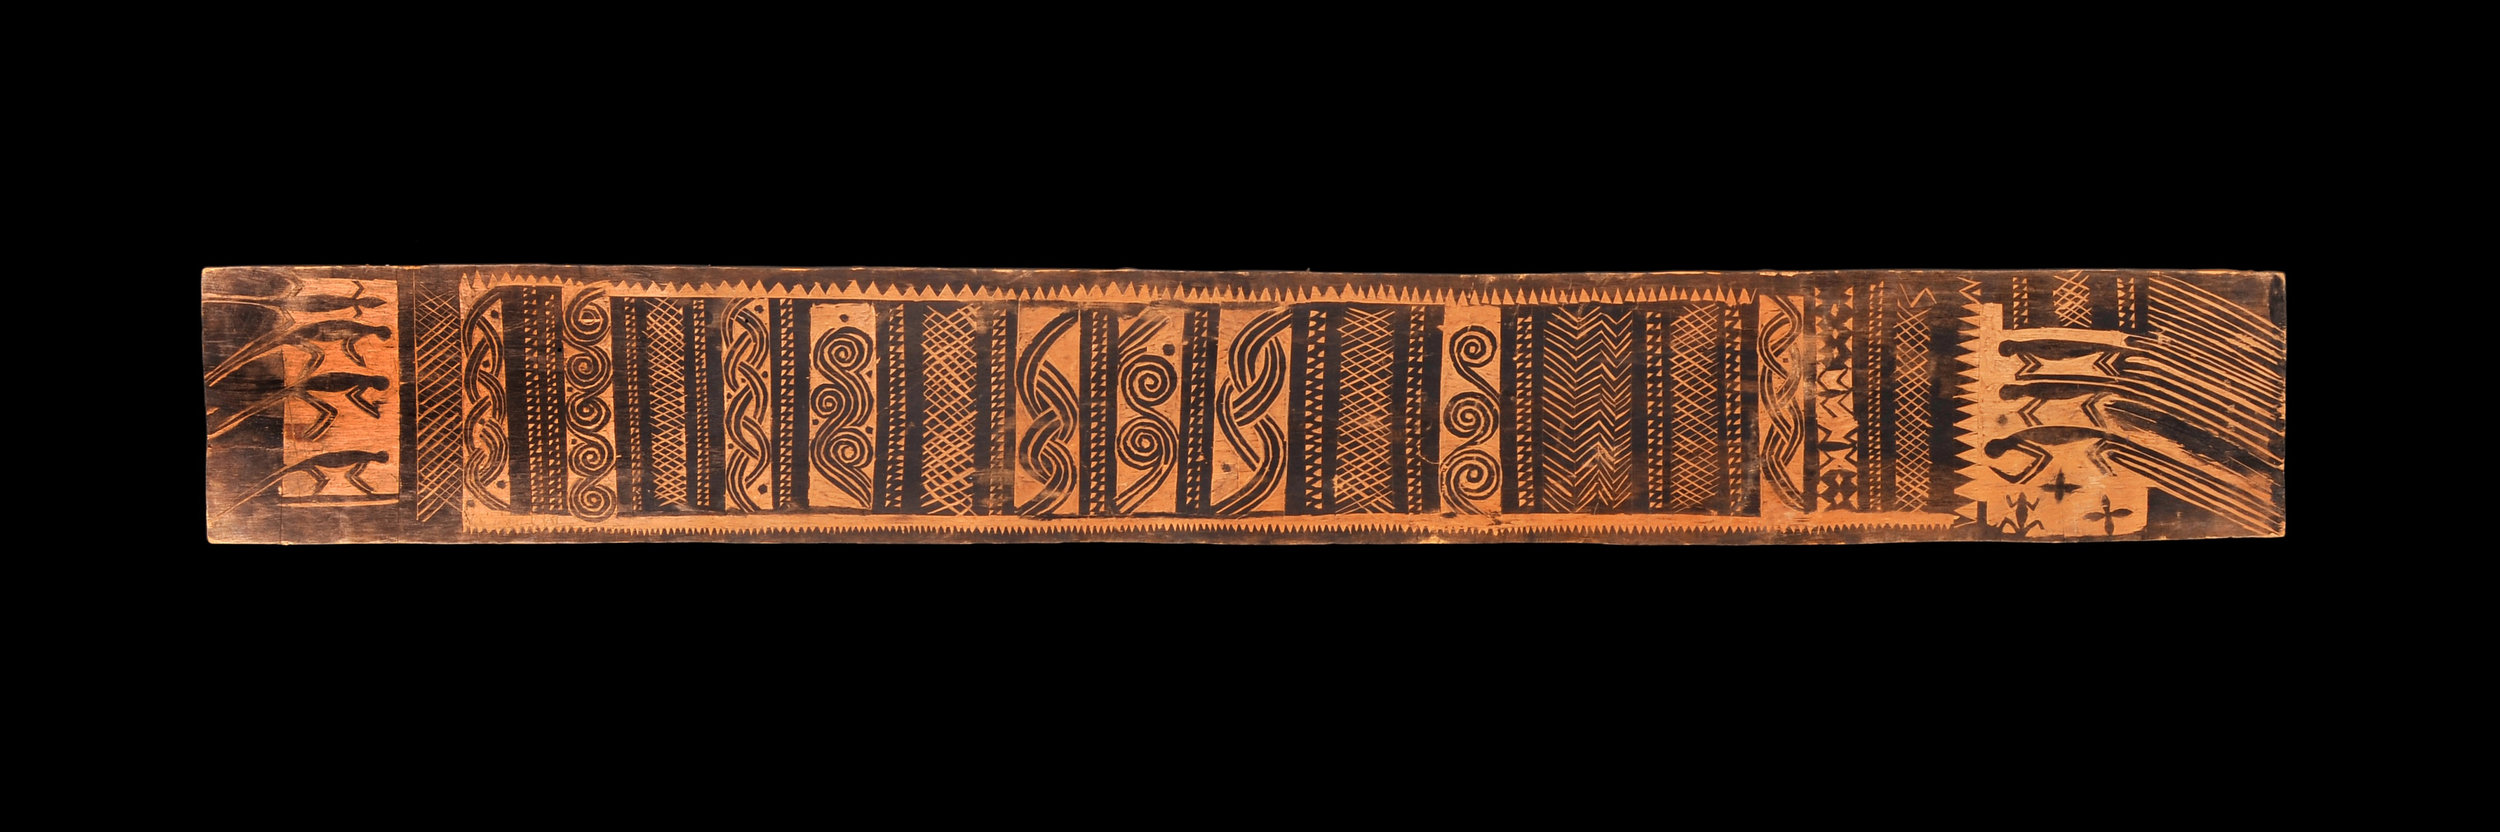 Incised and Painted Decorative Wooden Board | Inv #: IIC2653 © Museum der Kulturen Basel | Switzerland